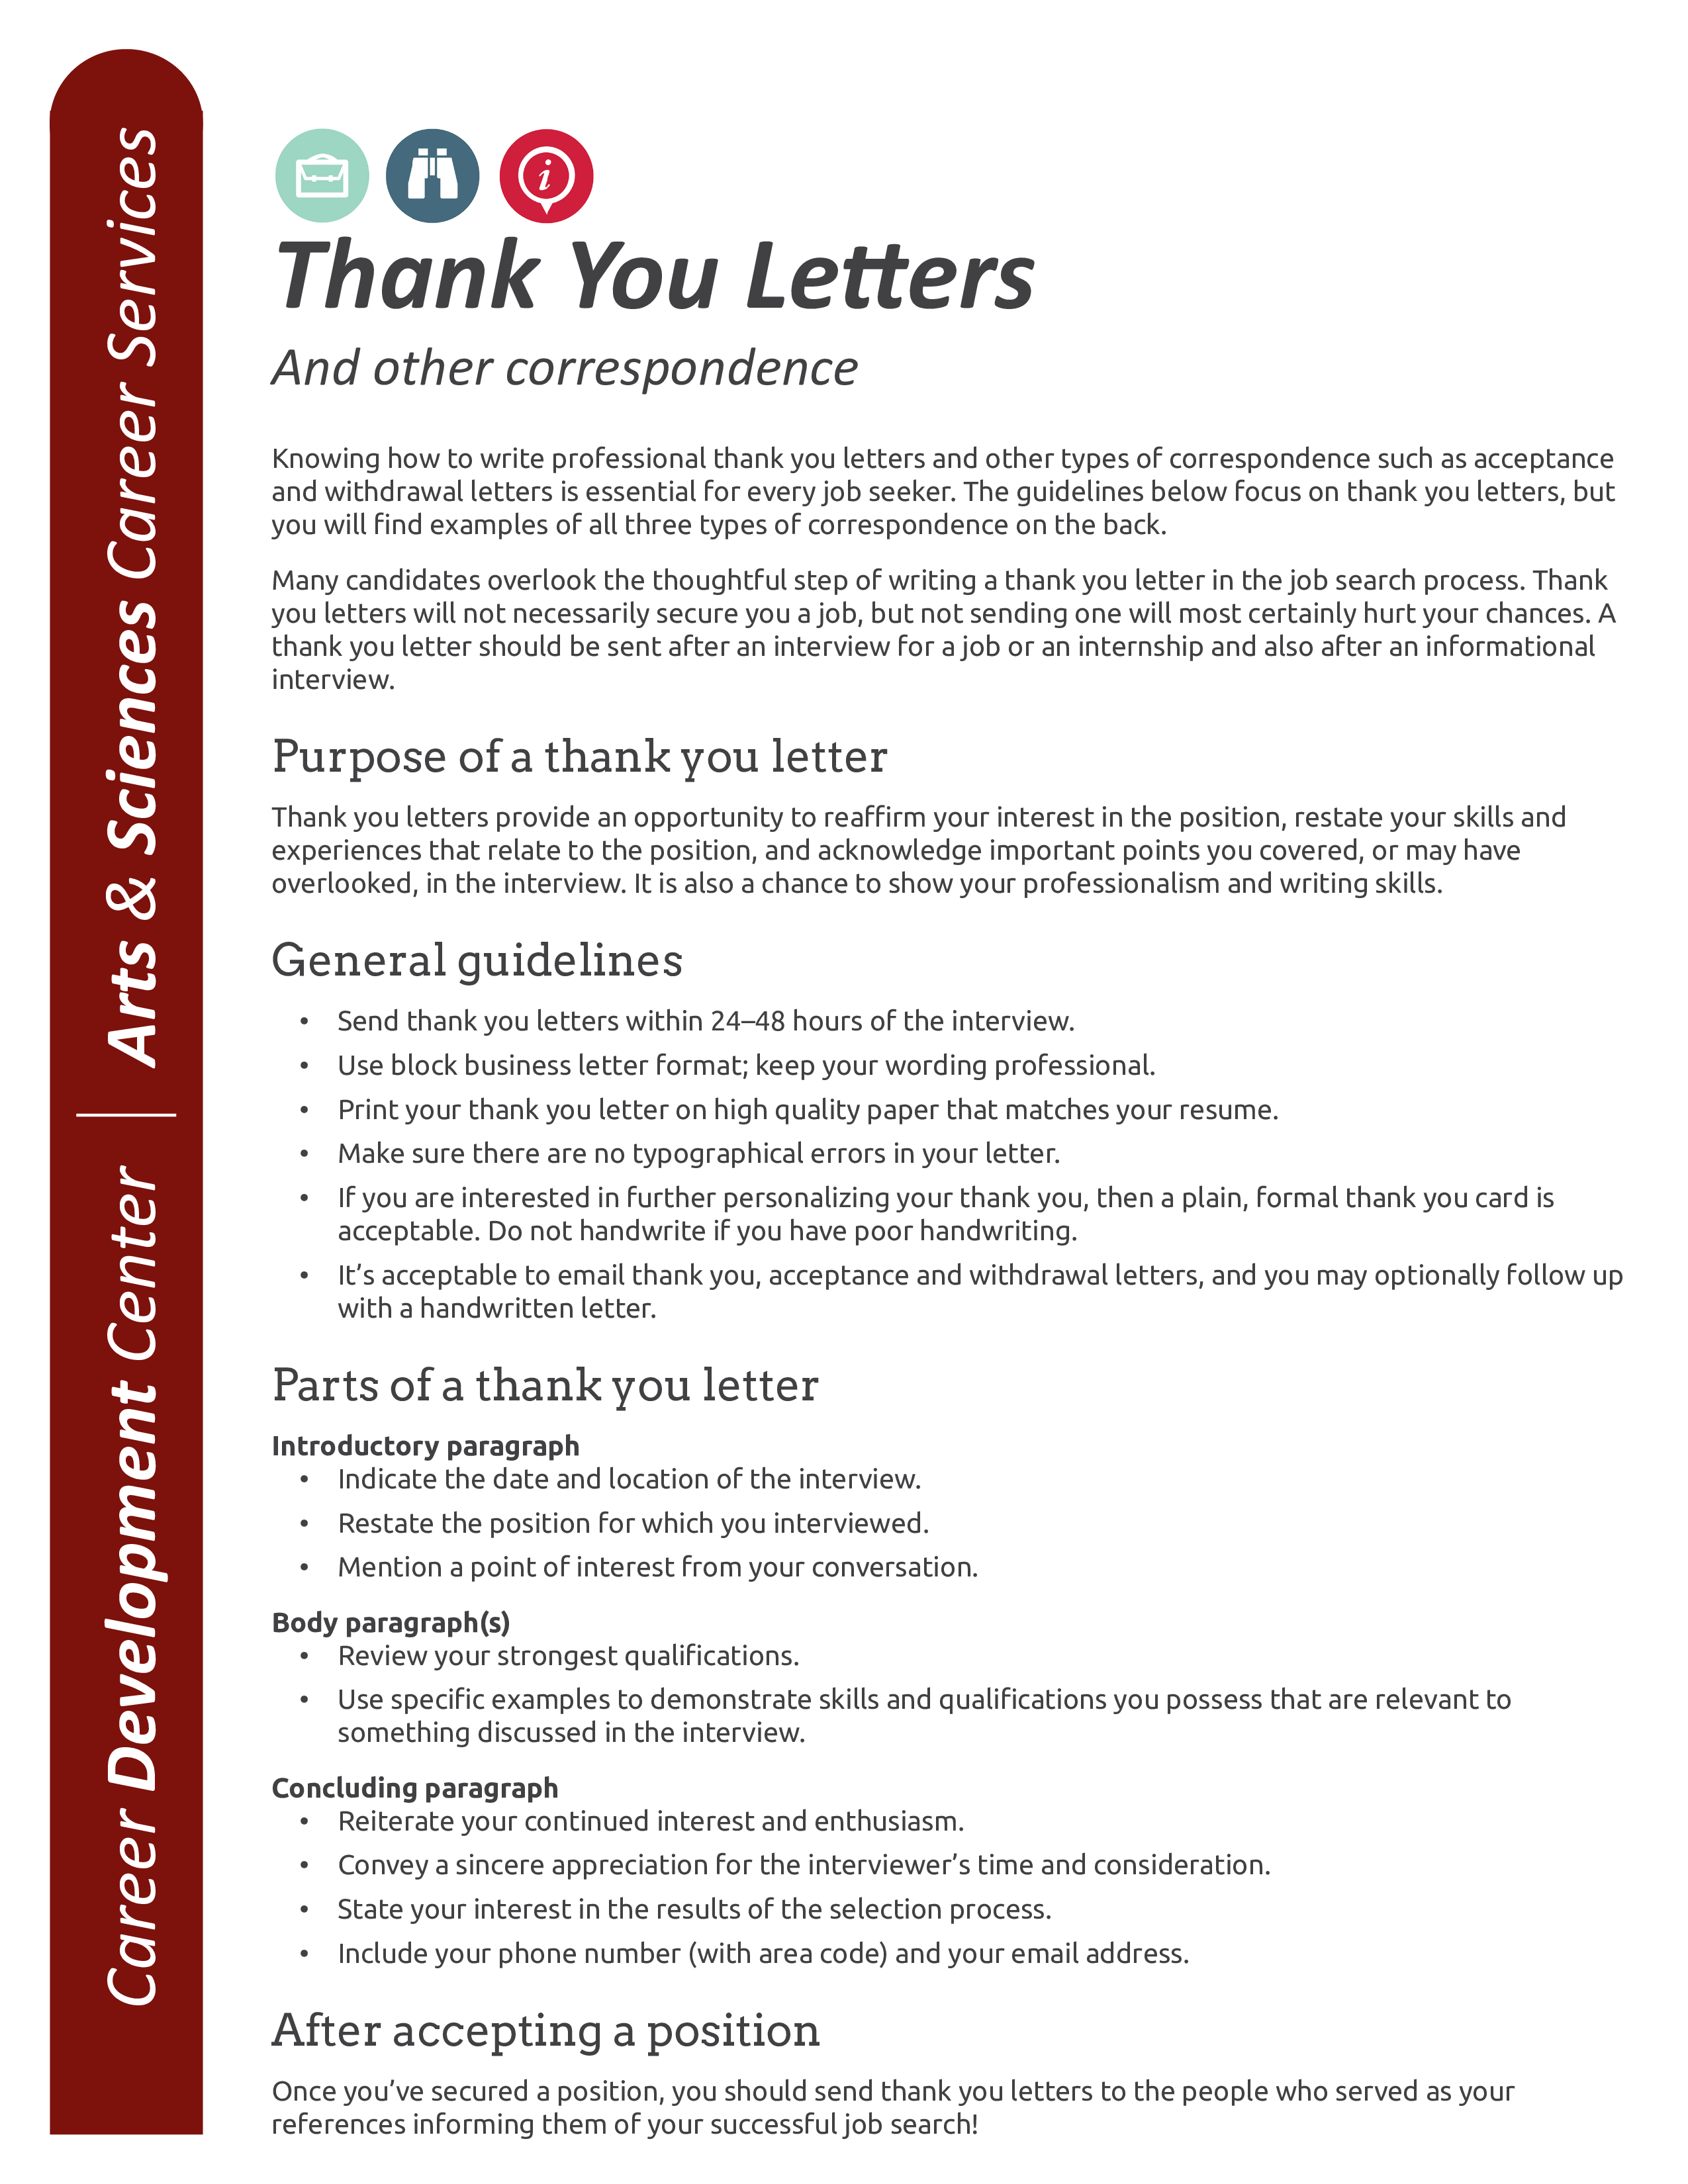 Free Professional Internship Thank You Letter Templates At